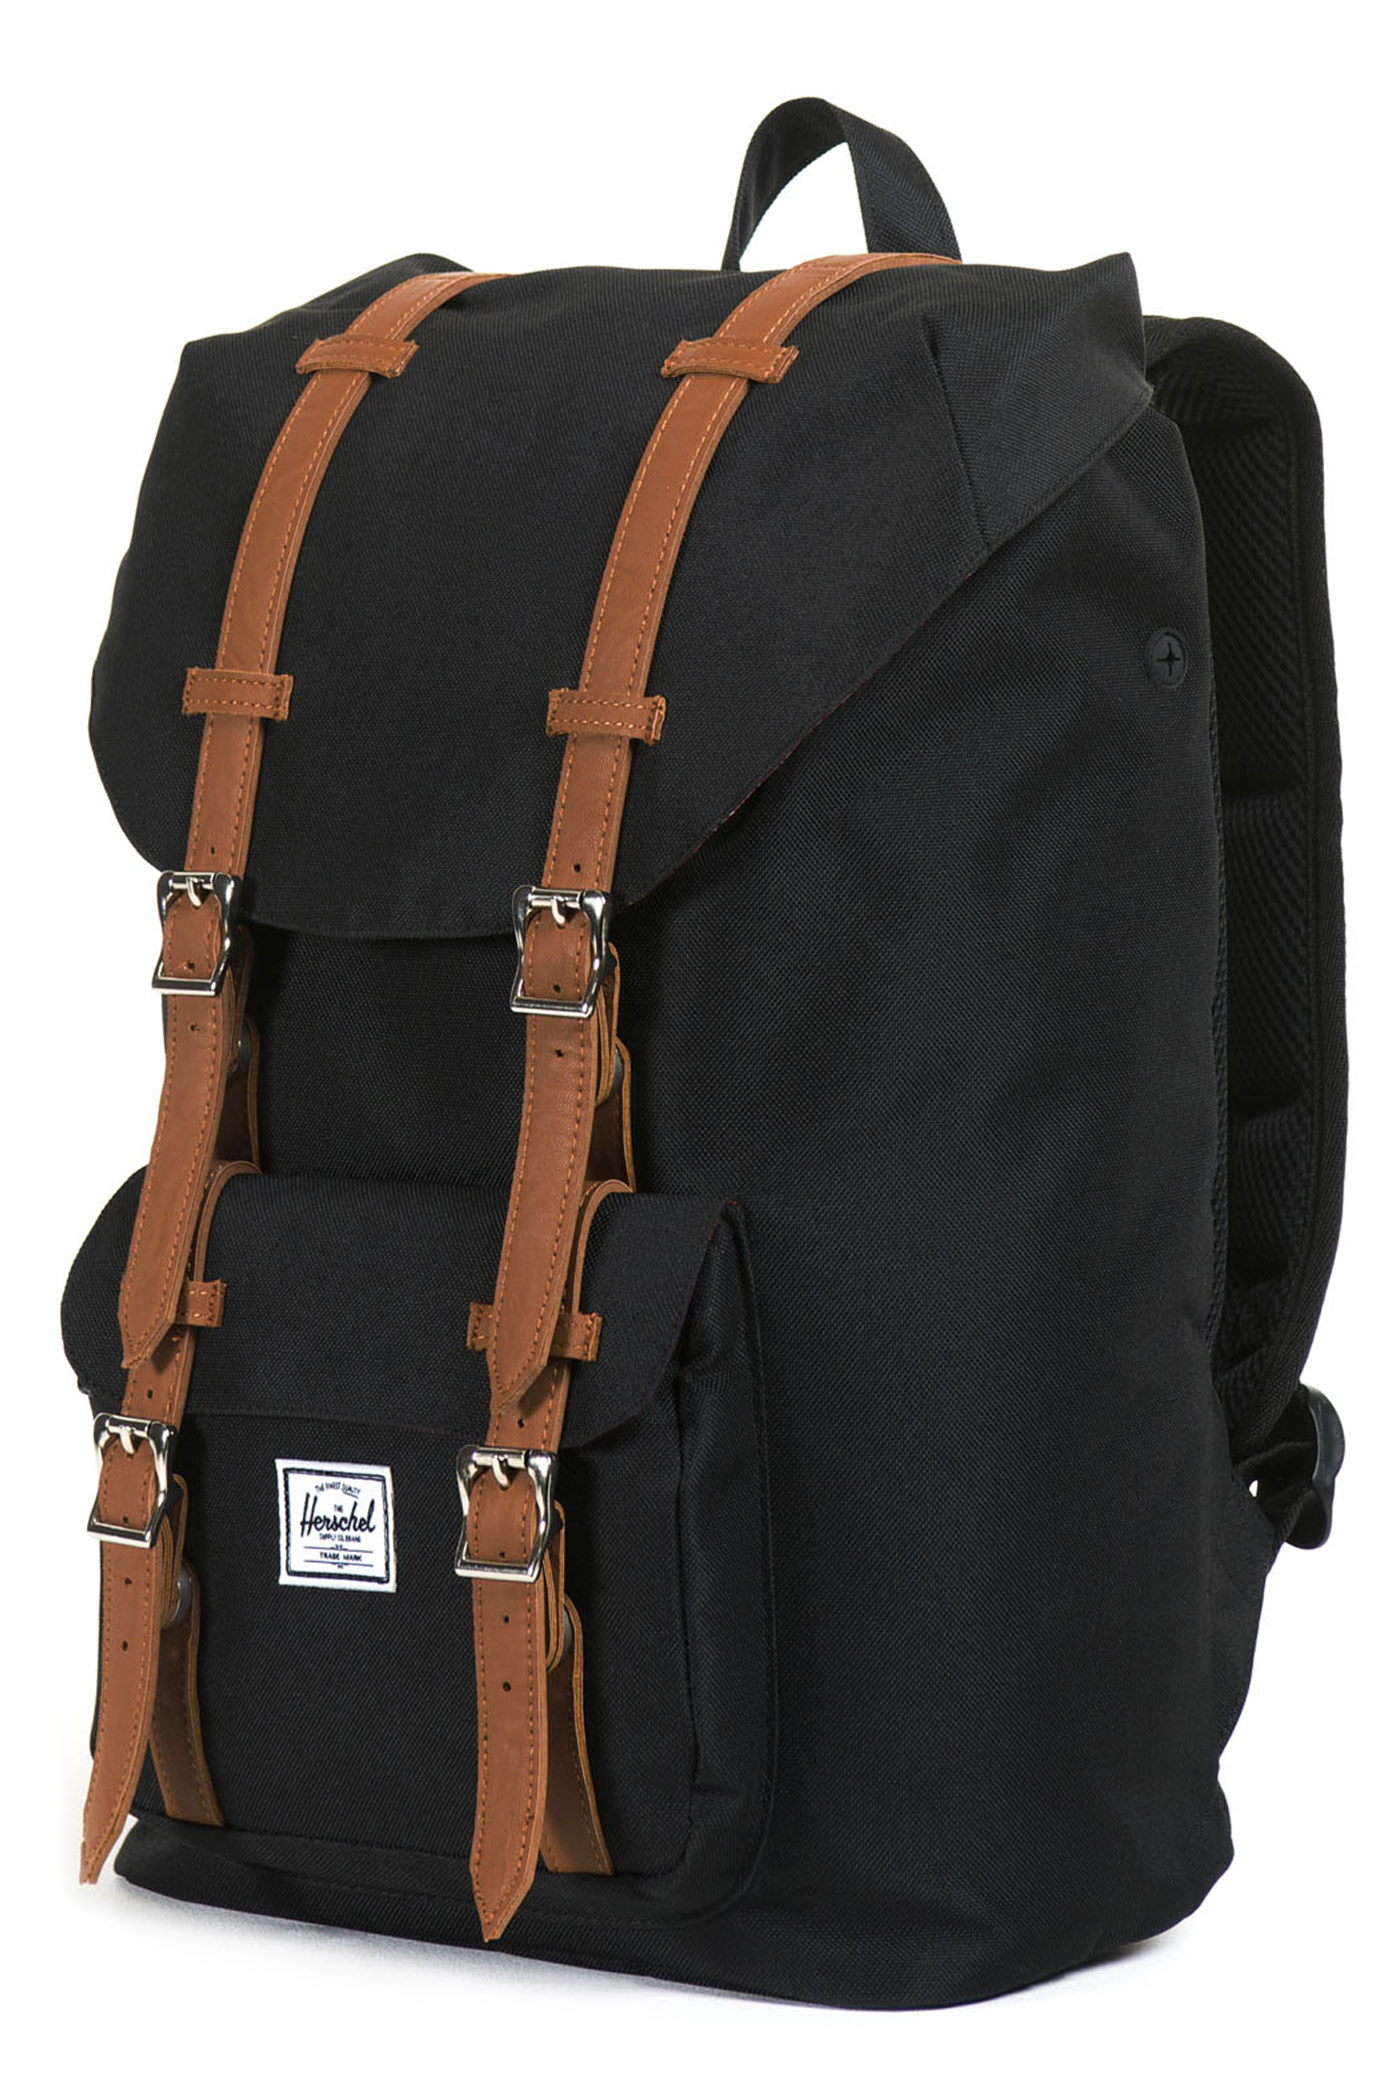 herschel little america mid volume backpack 16 5l black. Black Bedroom Furniture Sets. Home Design Ideas